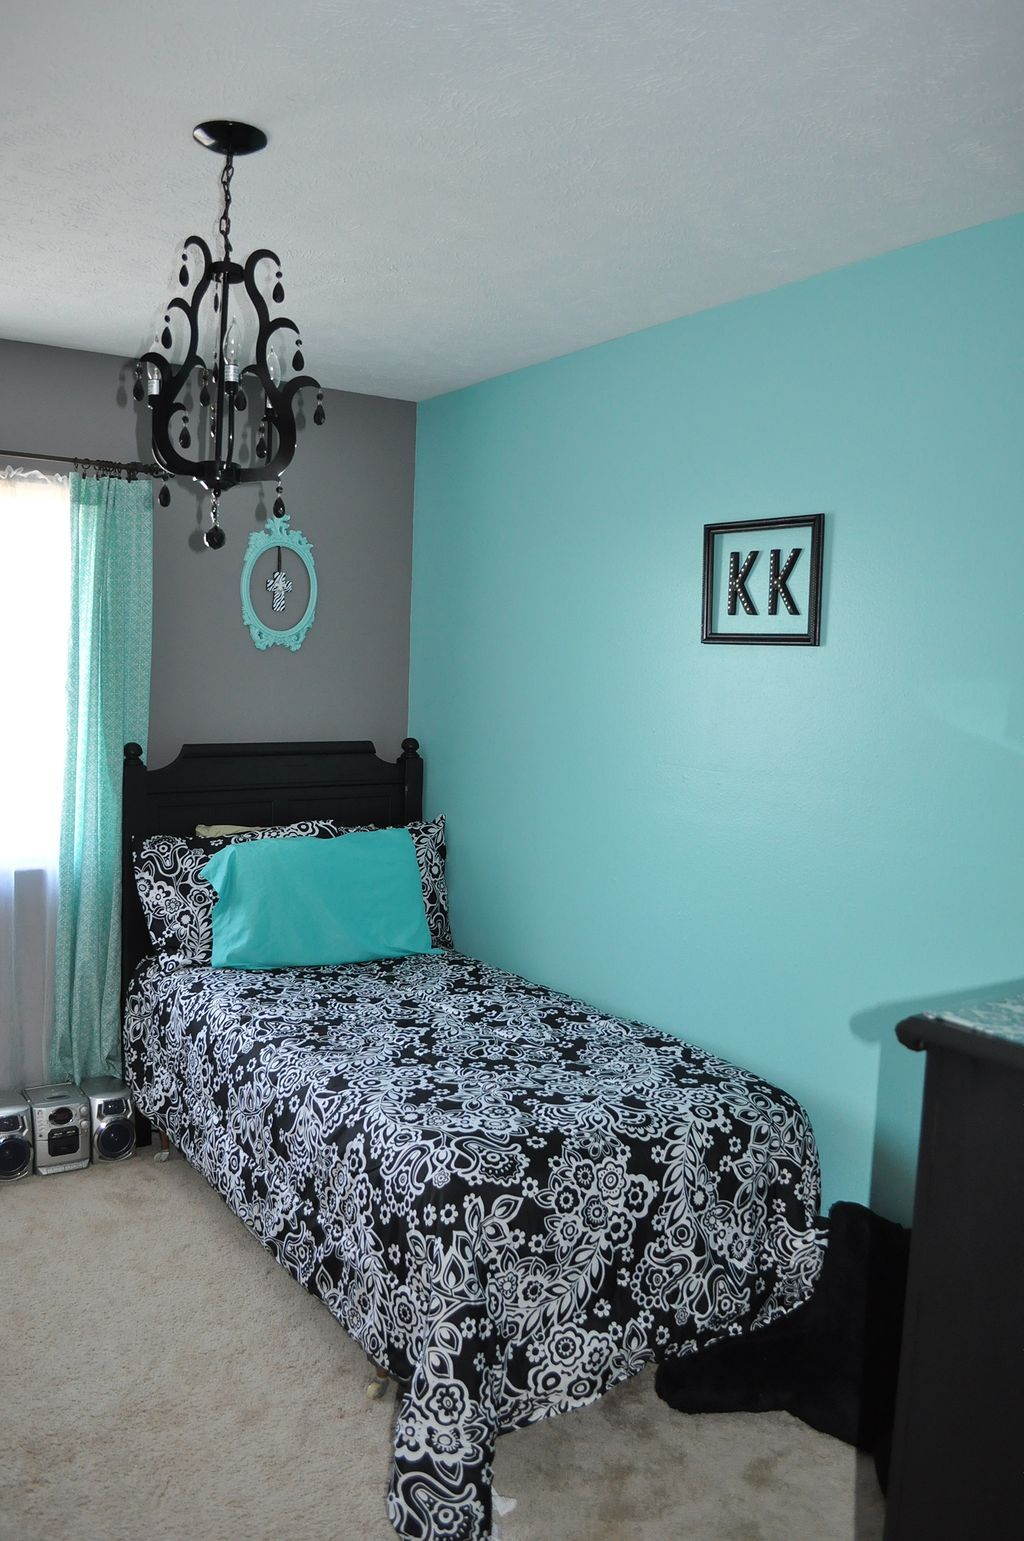 40 Fascinating Bedroom Decoration Ideas With Images Turquoise